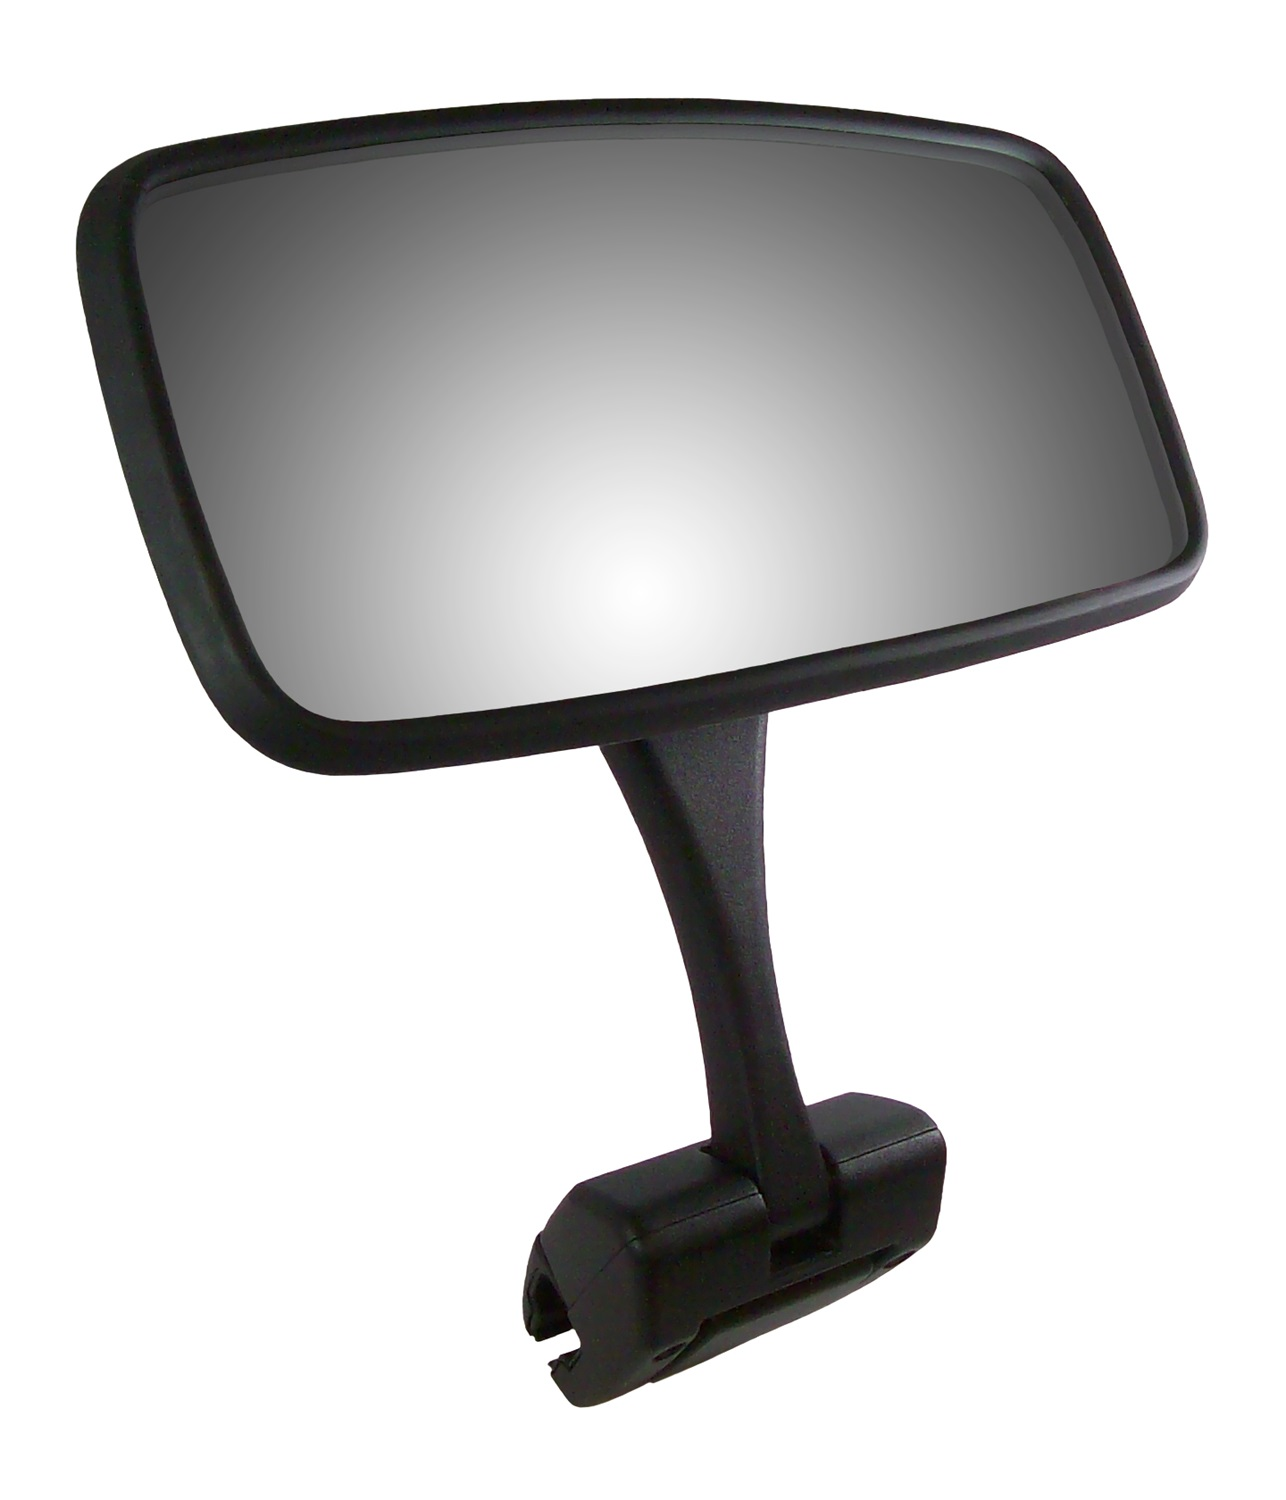 Cipa mirrors 01309 comp universal boat mirror ebay for Mirror yacht